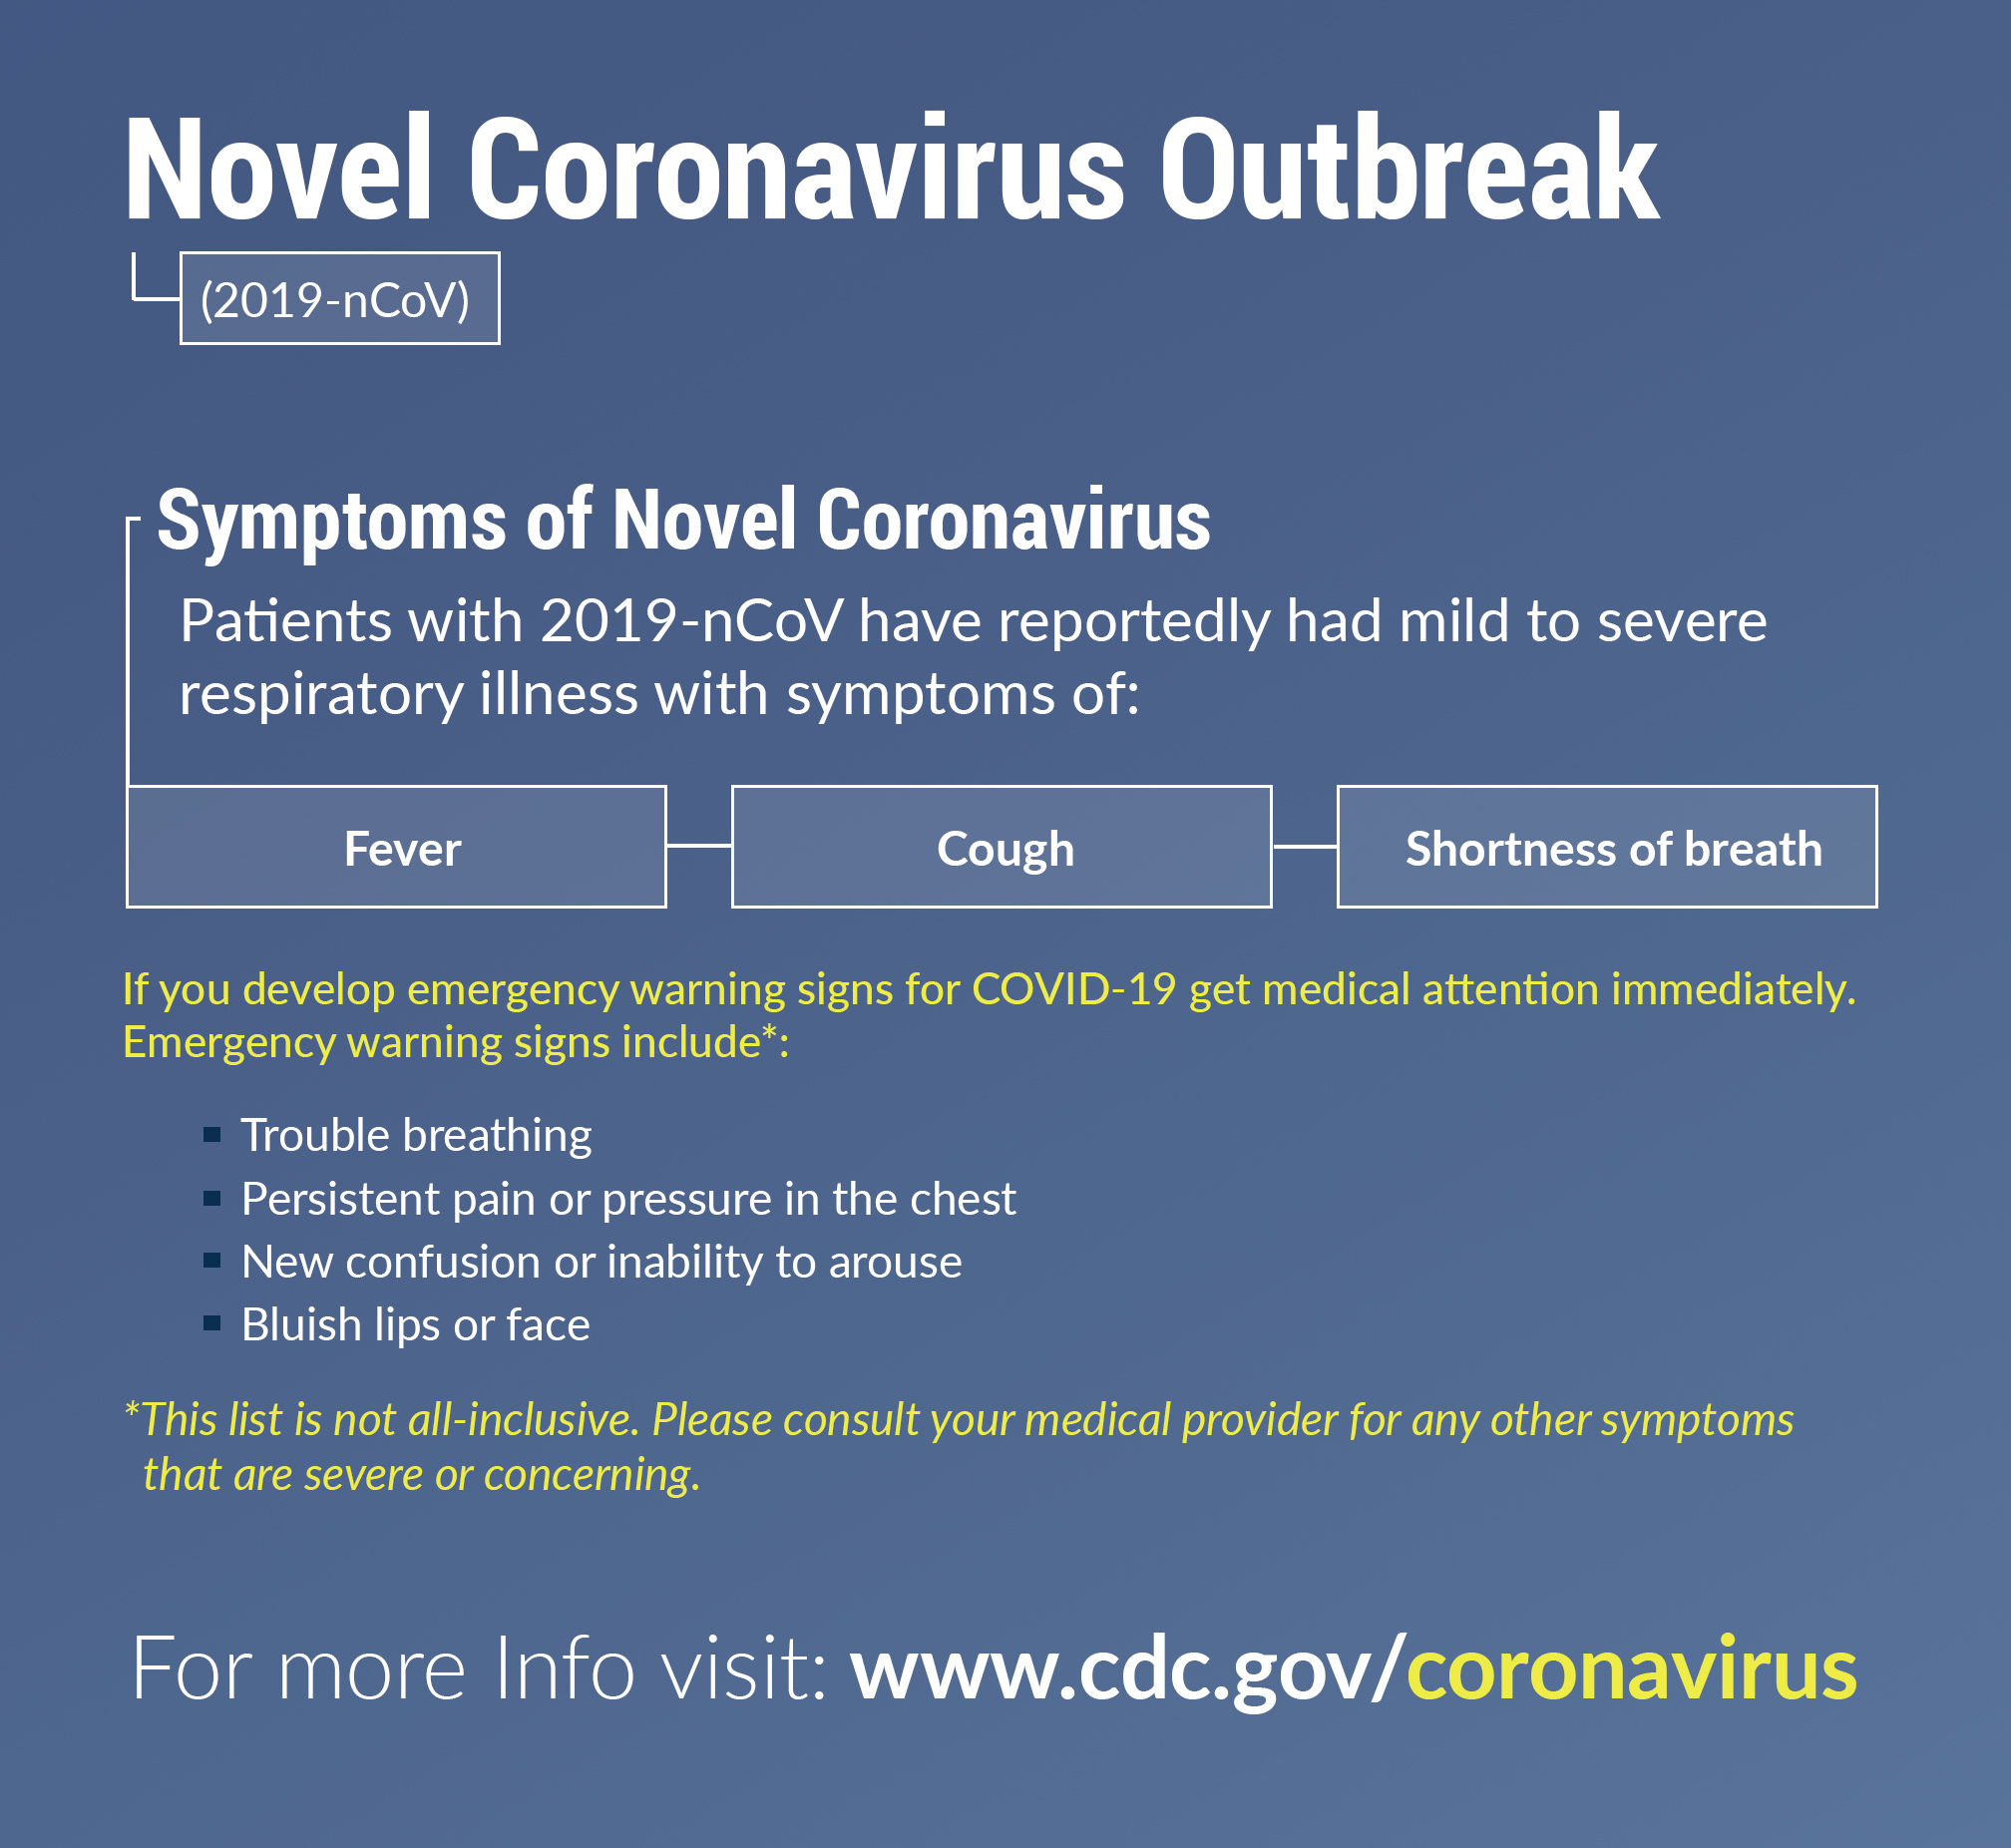 Novel Coronavirus Outbreak - Symptoms: Mild to severe respiratory illness with symptoms of fever, cough, shortness of breath. Symptoms may appear 2-14 days after exposure. If you have been to China within the past 2 weeks and develop symptoms, call your doctor.